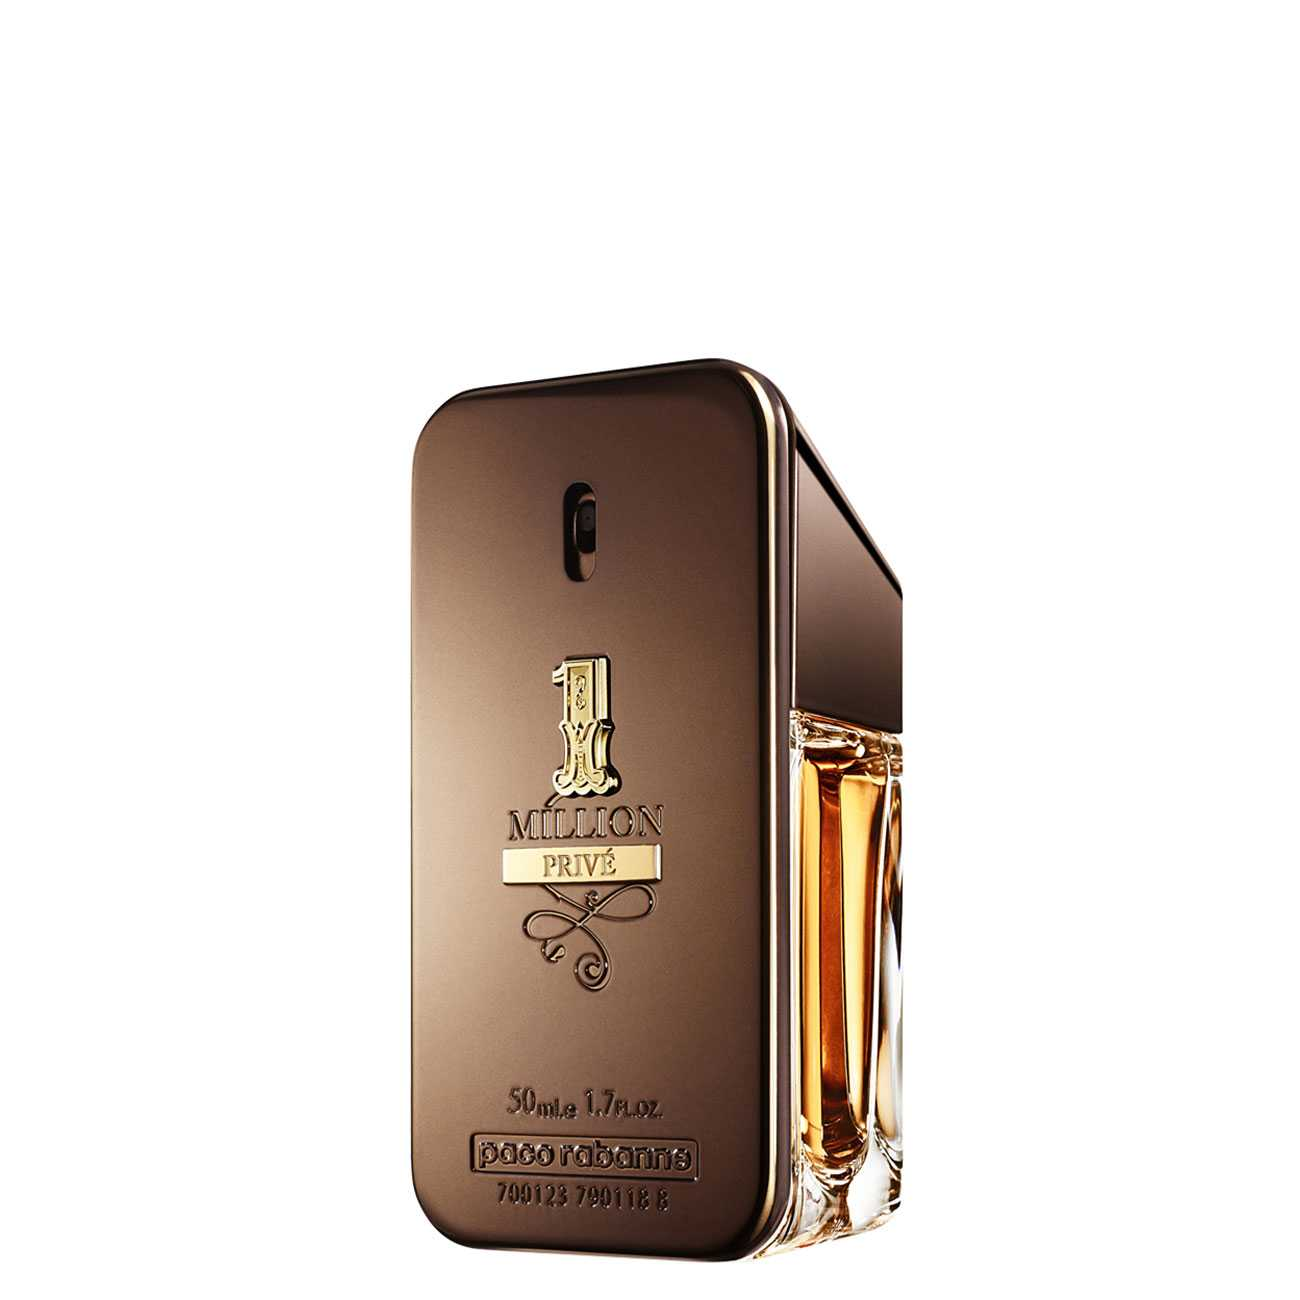 1 MILLION PRIVÉ 50ml